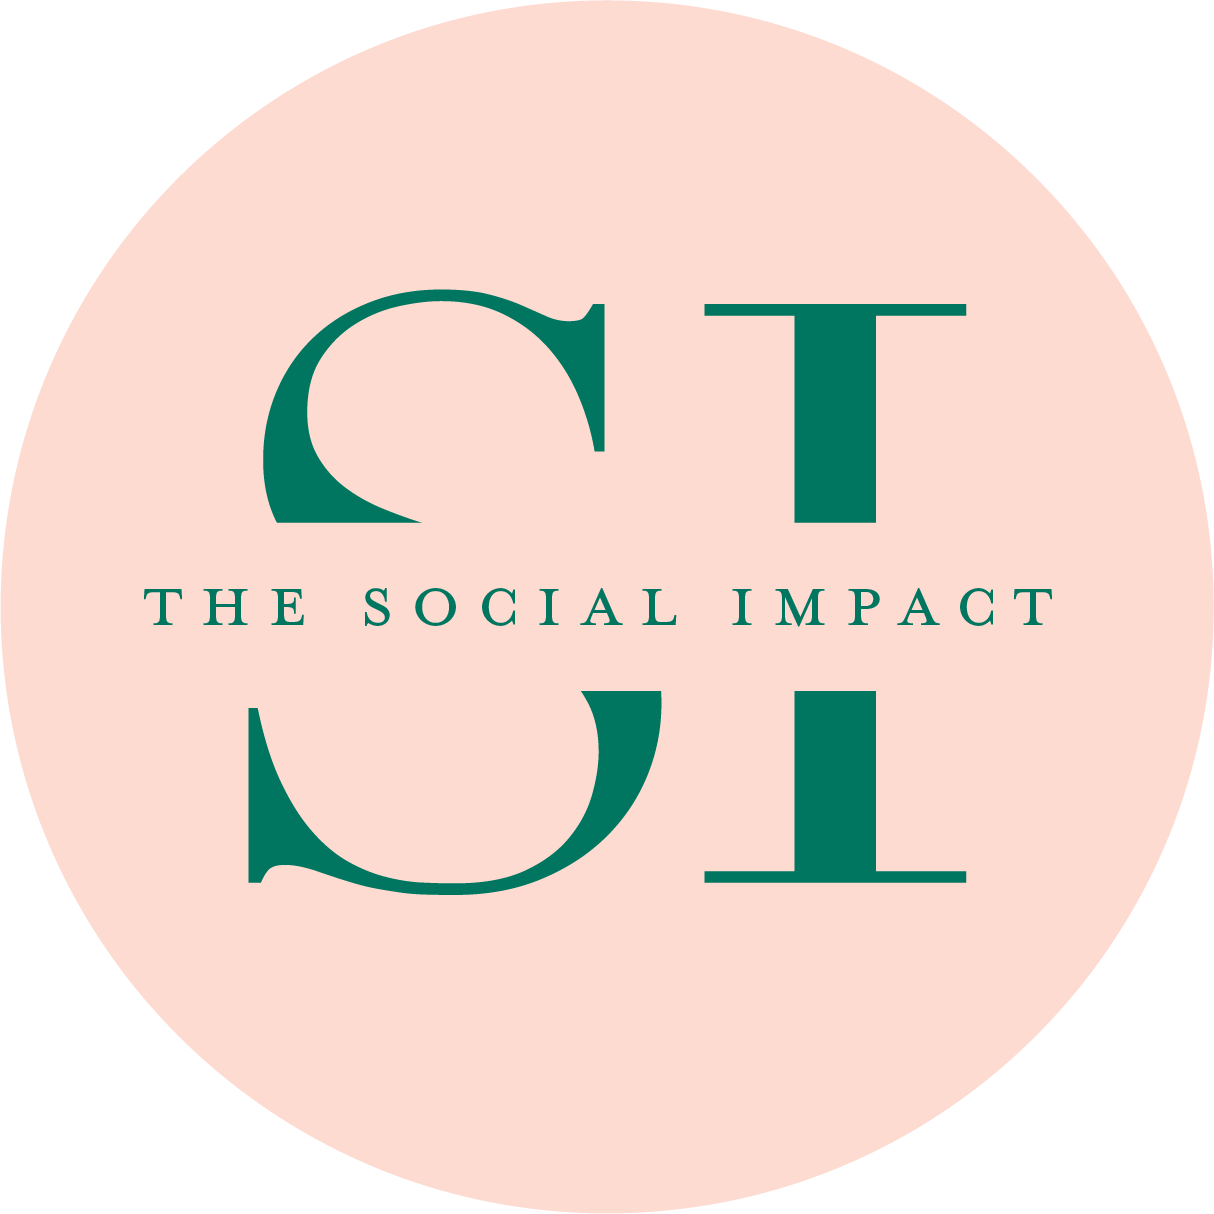 The Social Impact - About Us